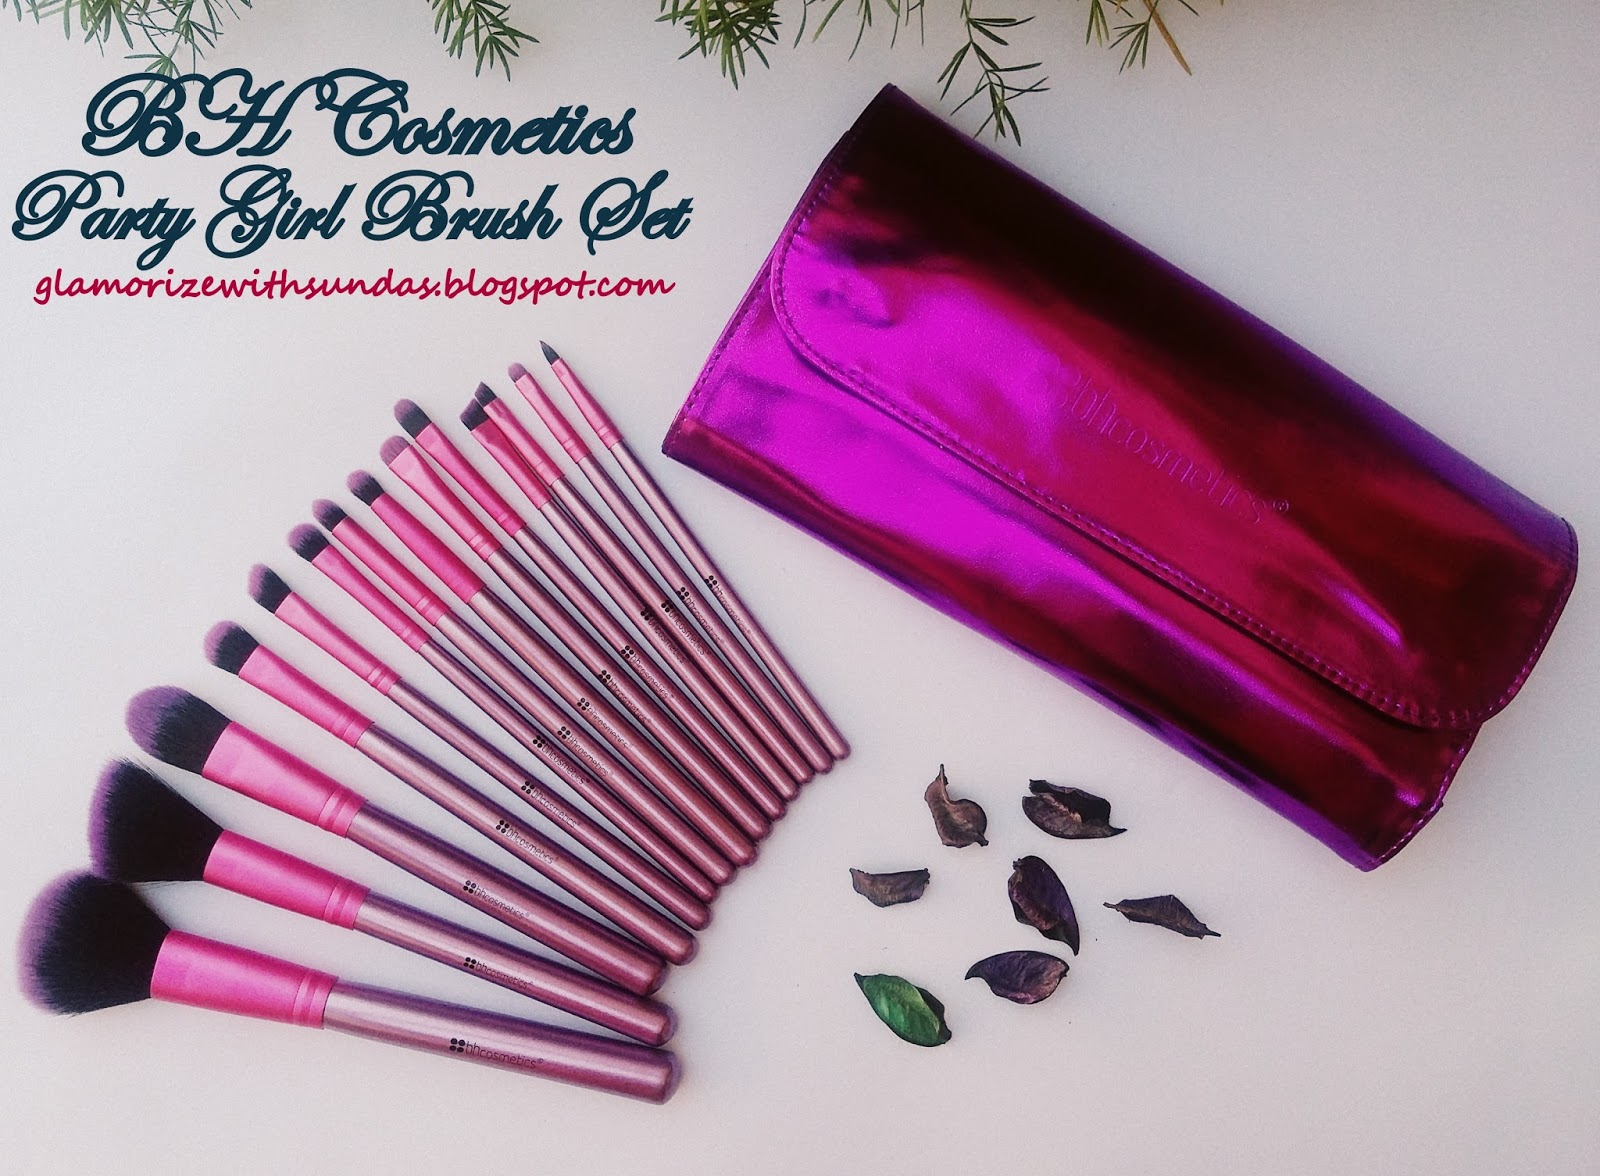 c072429897a4 Review on BH Cosmetics Party Girl Brush Set and My Shopping Experience with  Zensky.